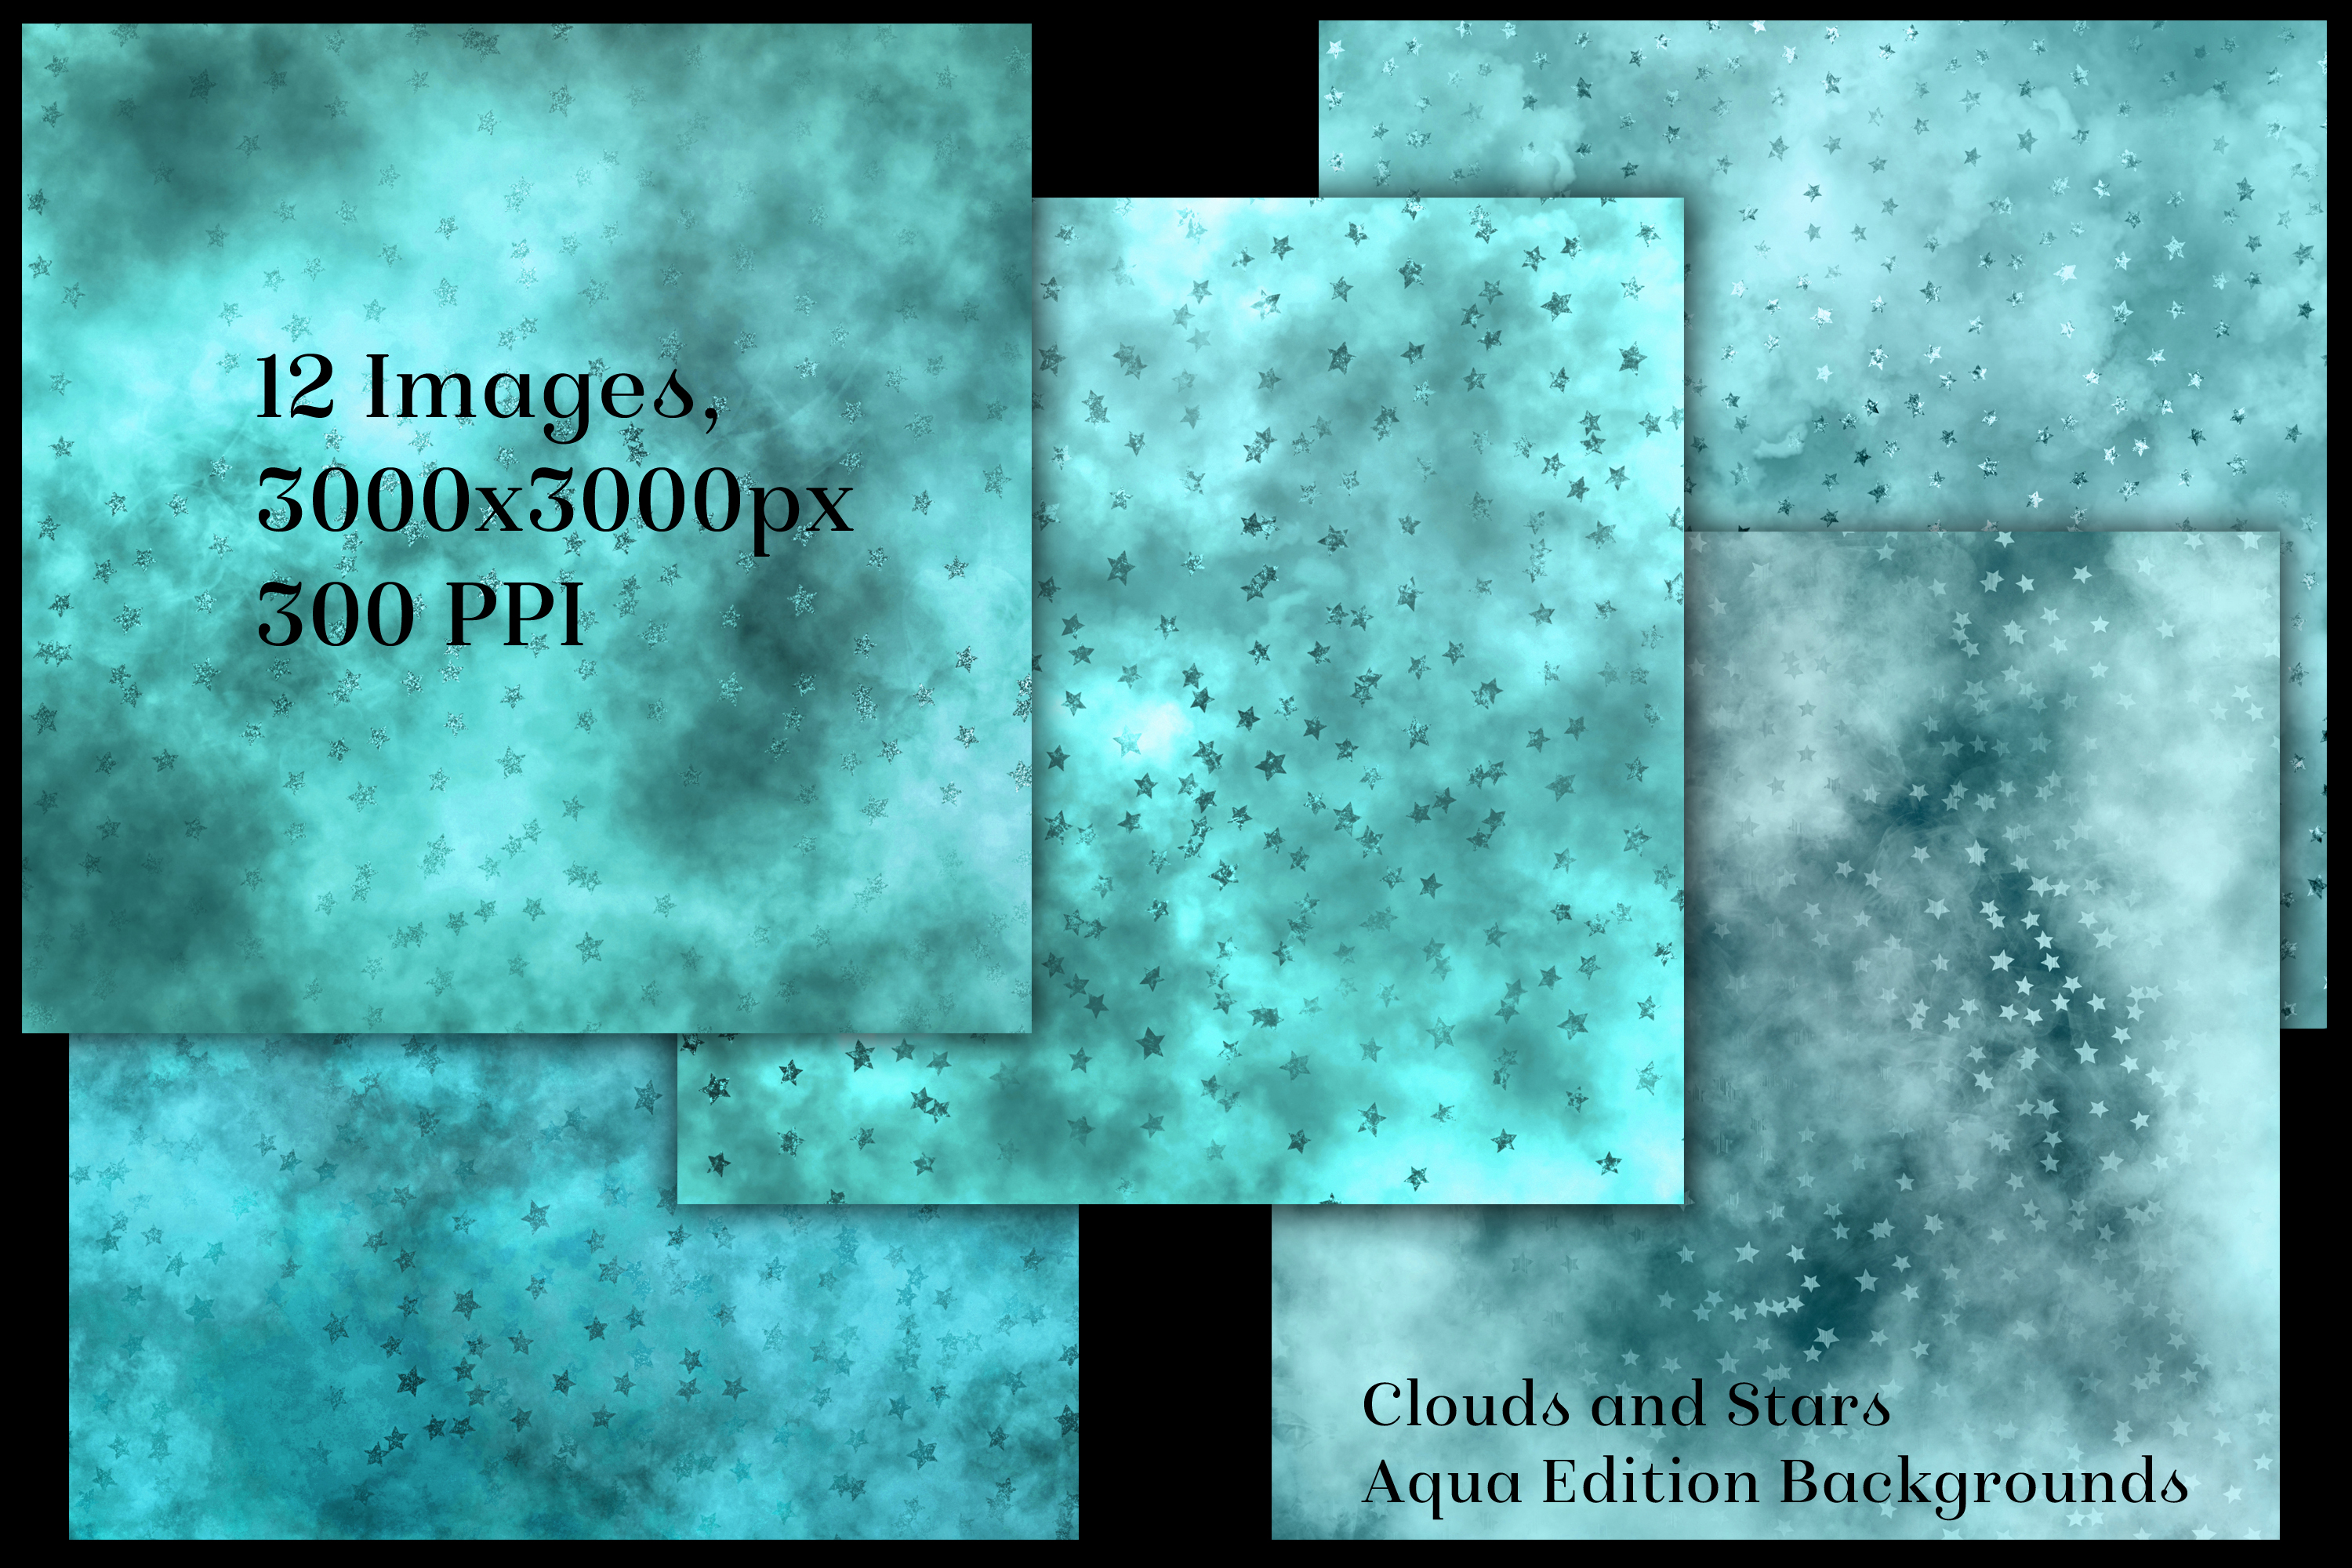 Clouds and Stars - Aqua Edition Backgrounds example image 2